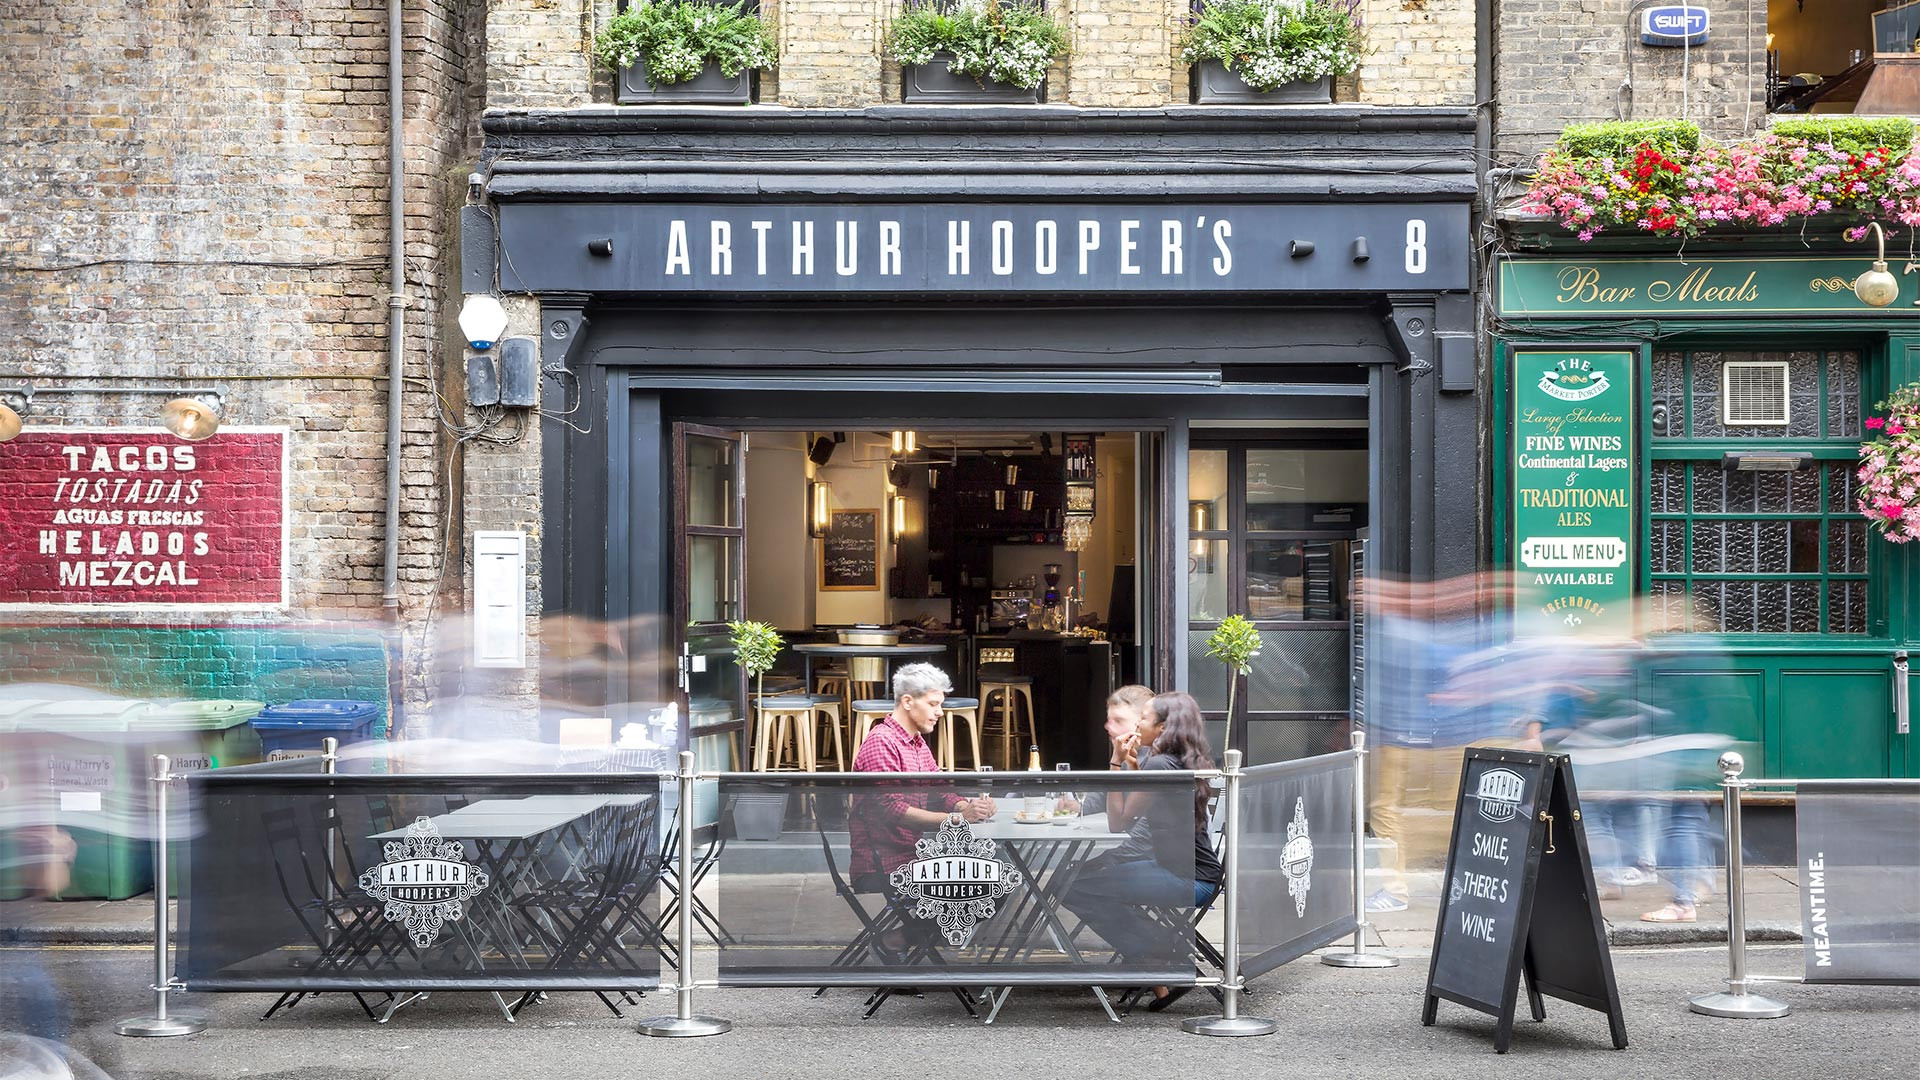 Arthur Hooper's restaurant and wine bar in Borough Market